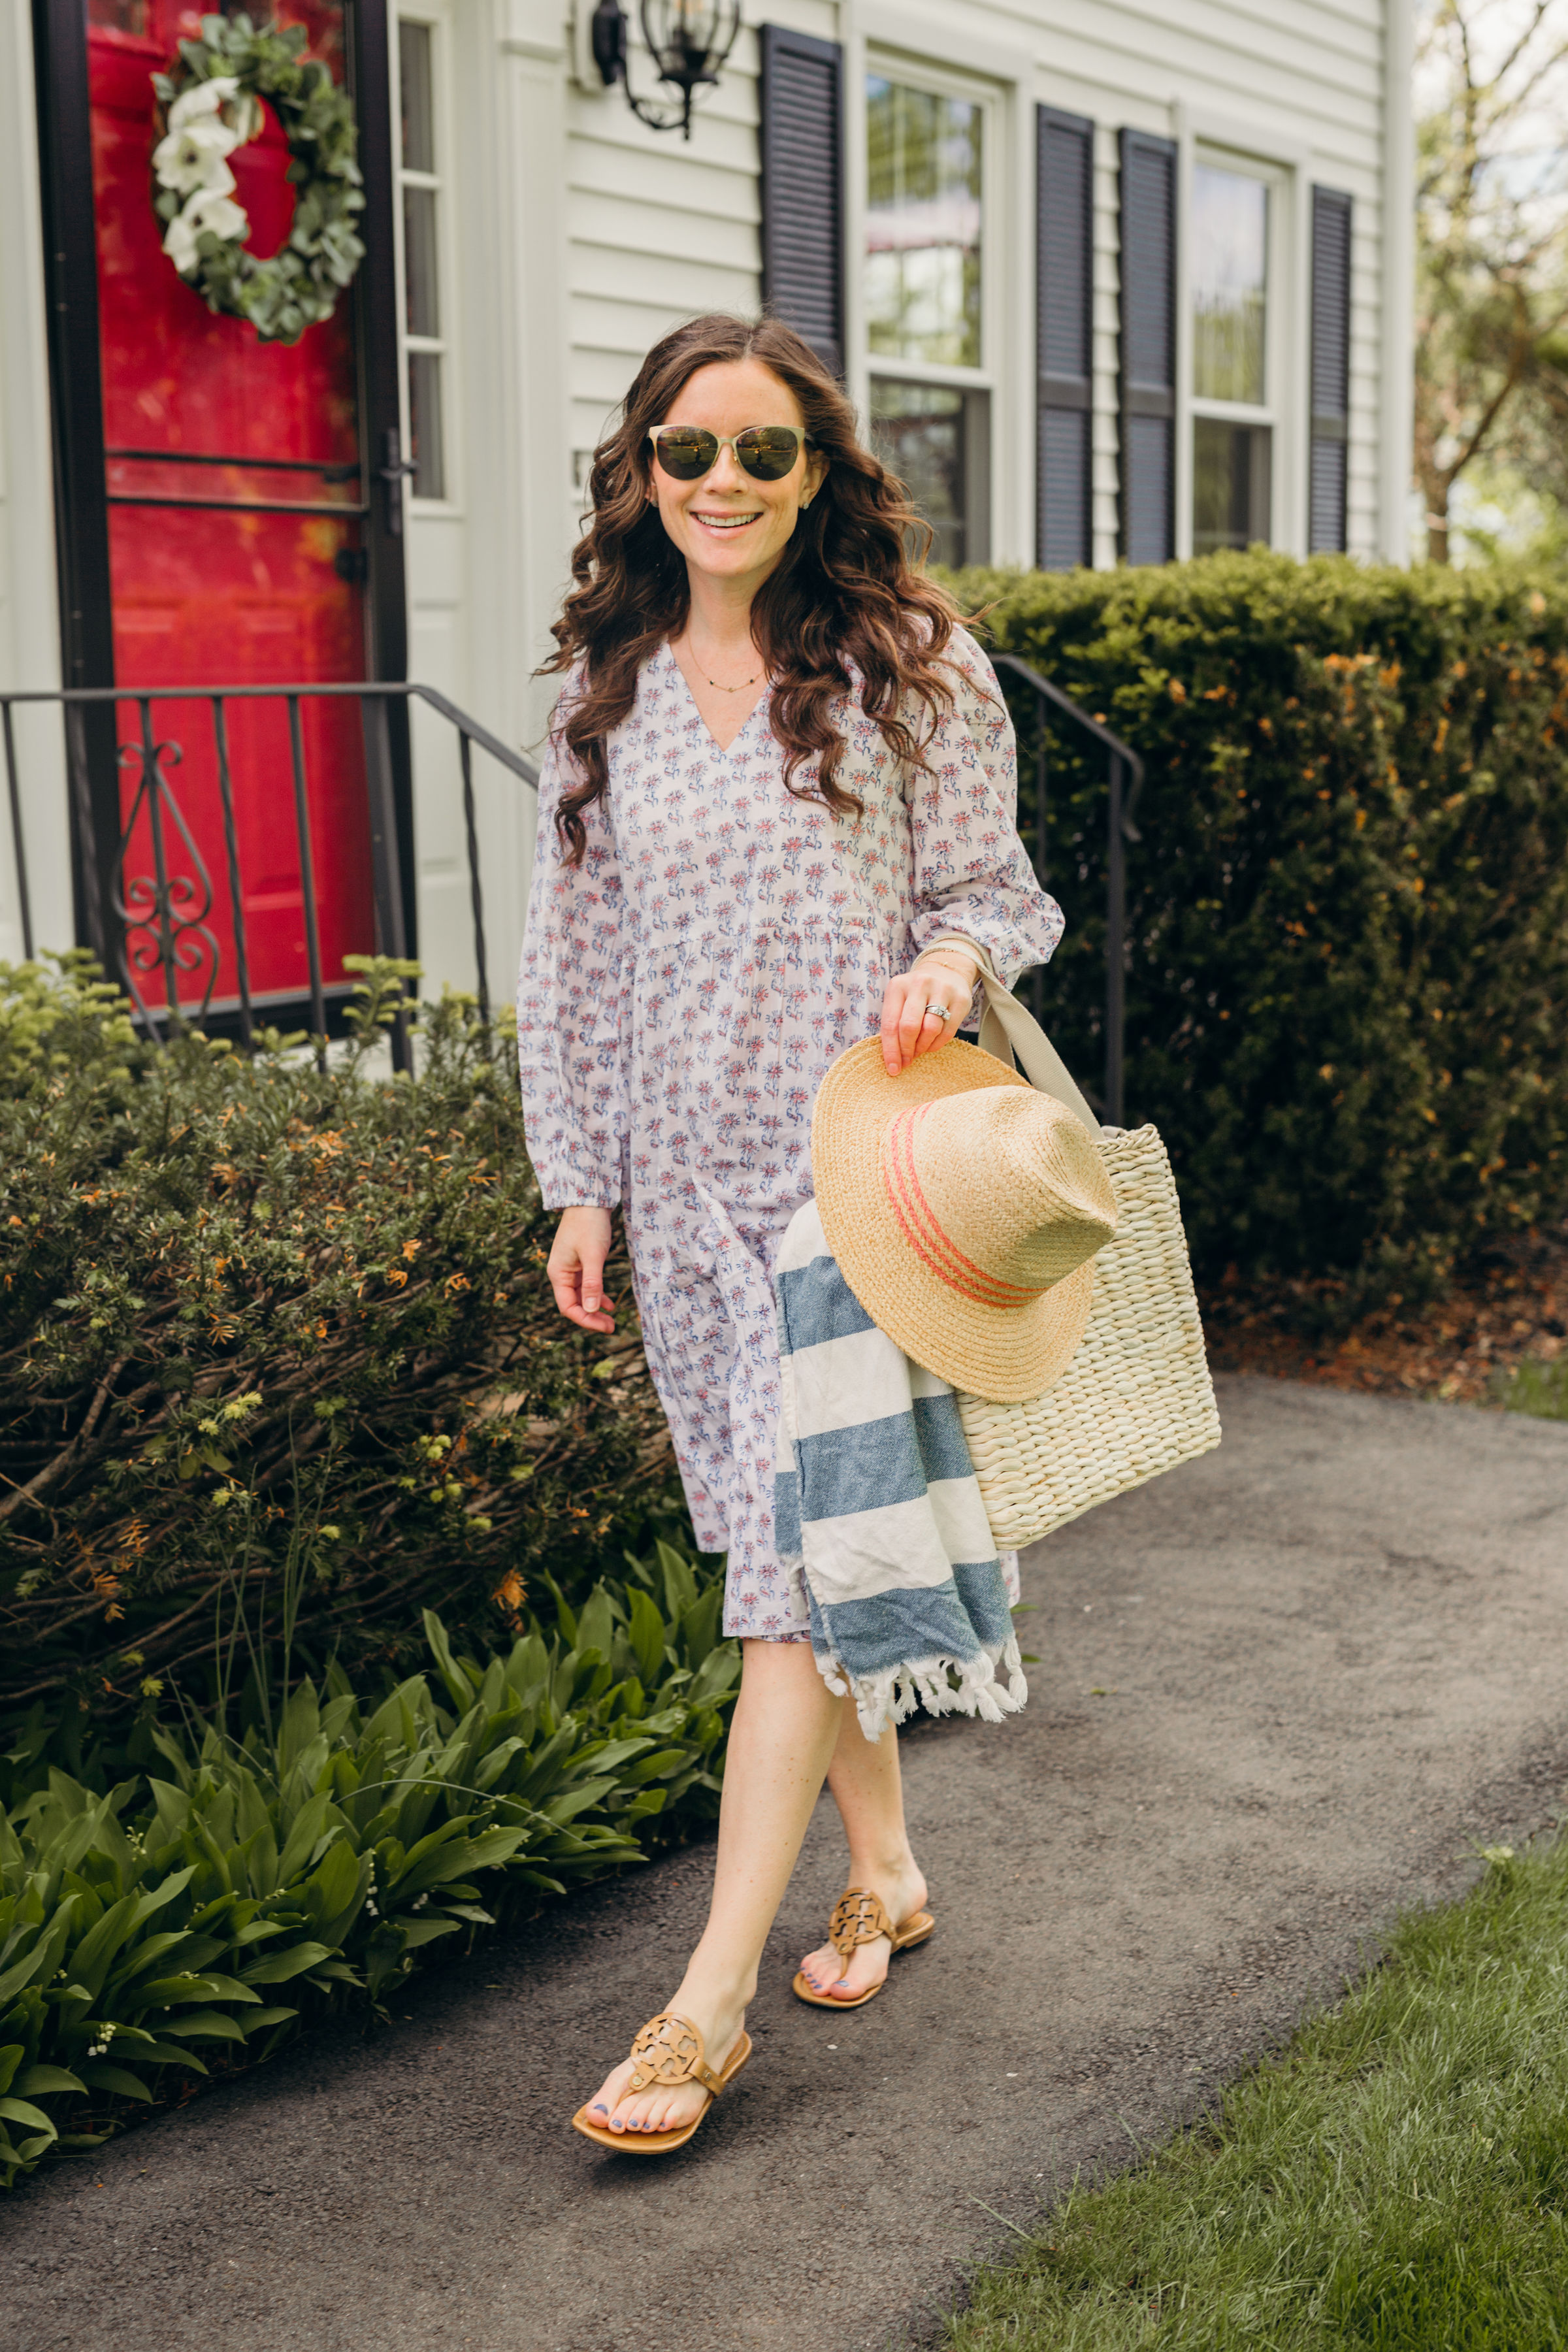 woman in swim cover up dress by shop navy bleu carrying hat and cooler tote